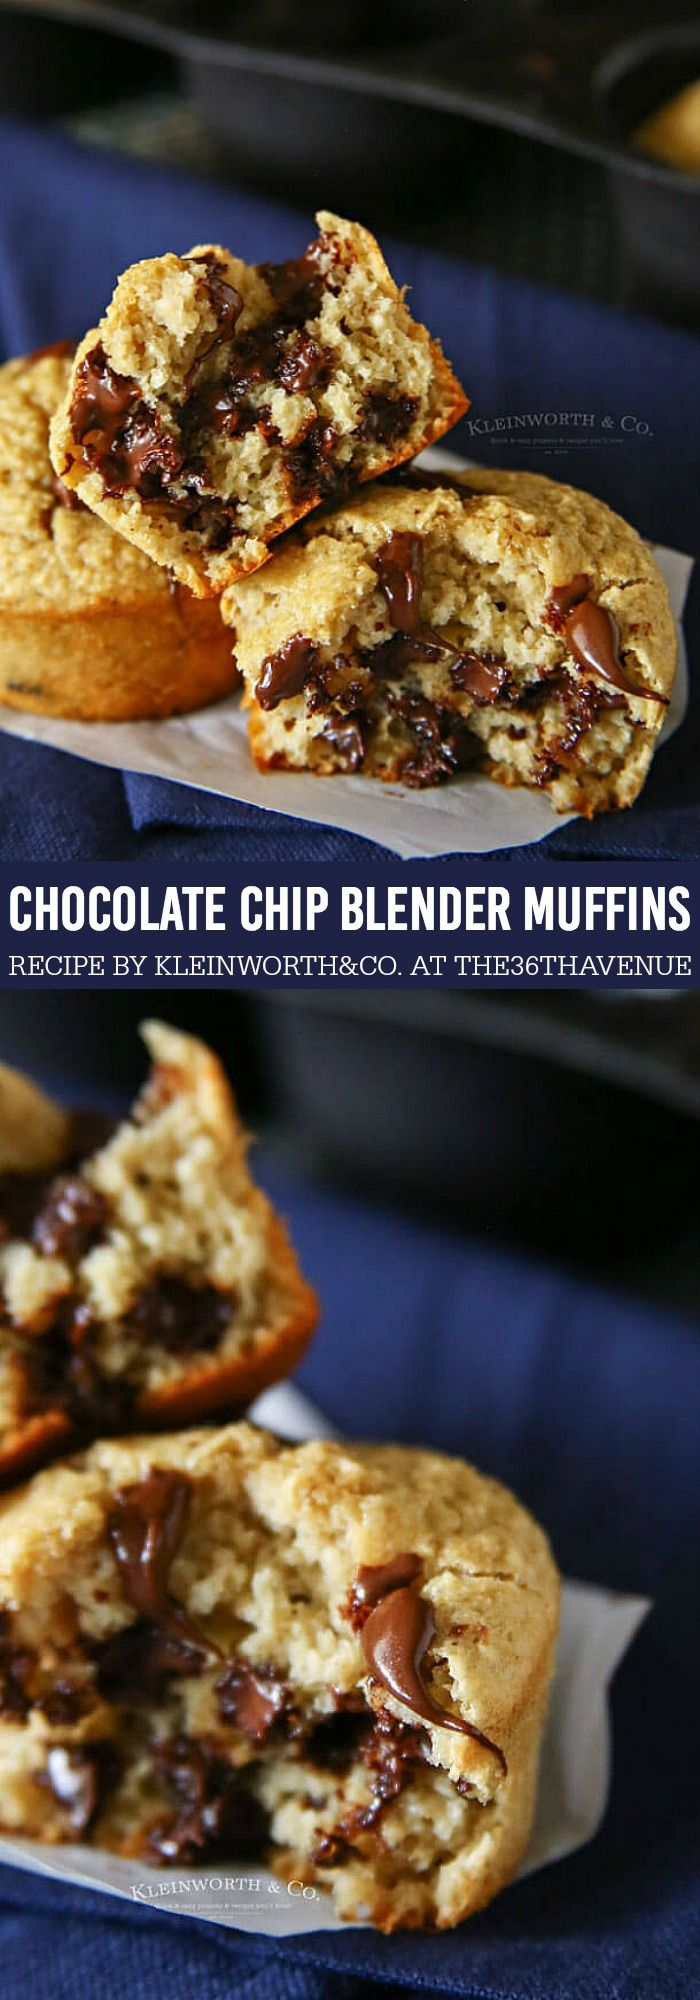 Muffin Recipe - Chocolate Chip Blender Muffins are perfect for breakfast or dessert